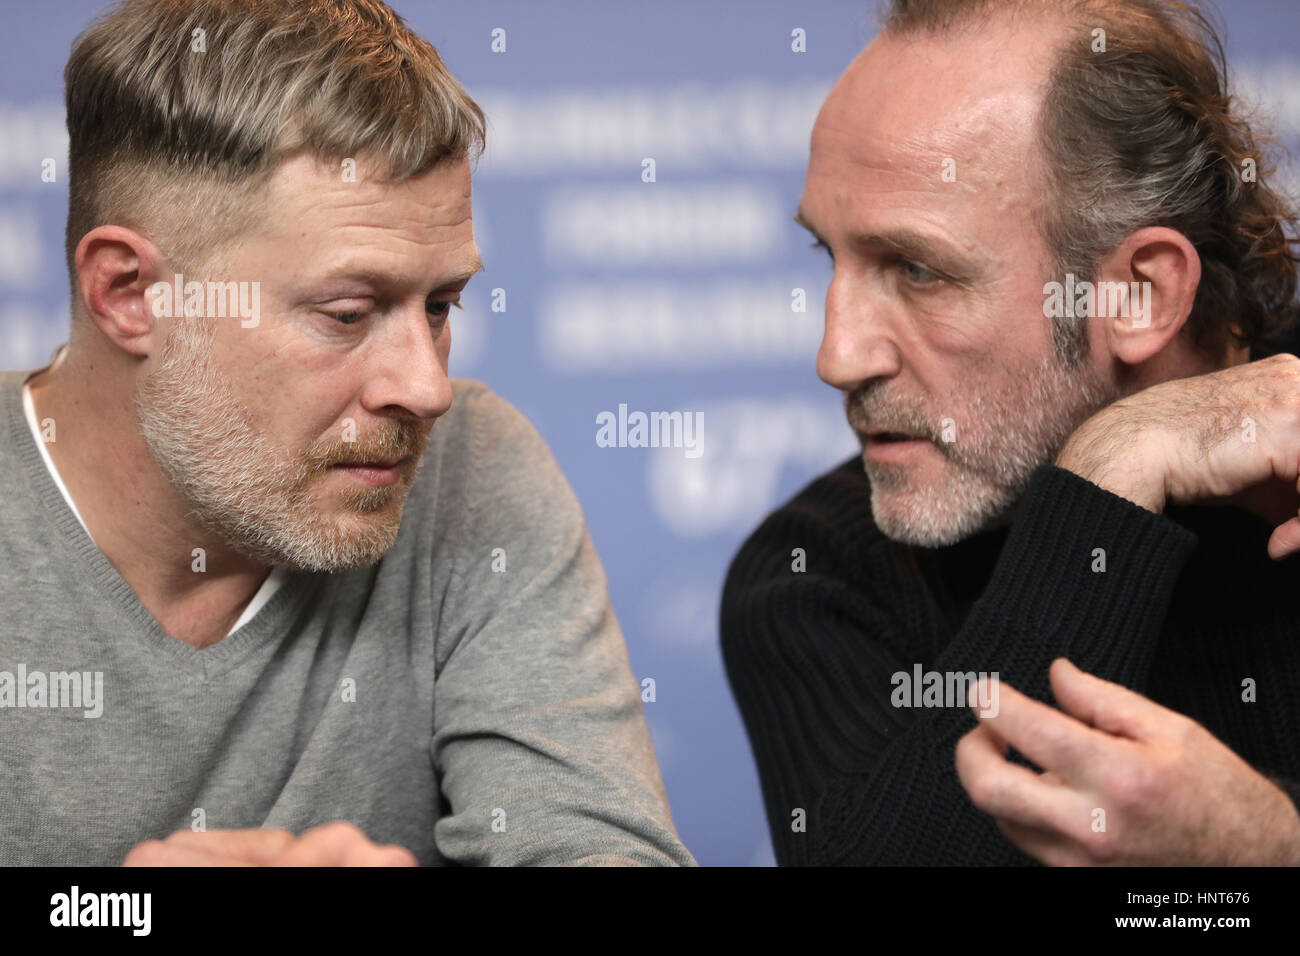 Berlin, Germany. 16th Feb, 2017. Actors Andreas Lust (l) and Karl Markovics at the 67th Berlinale Film Festival - Stock Image